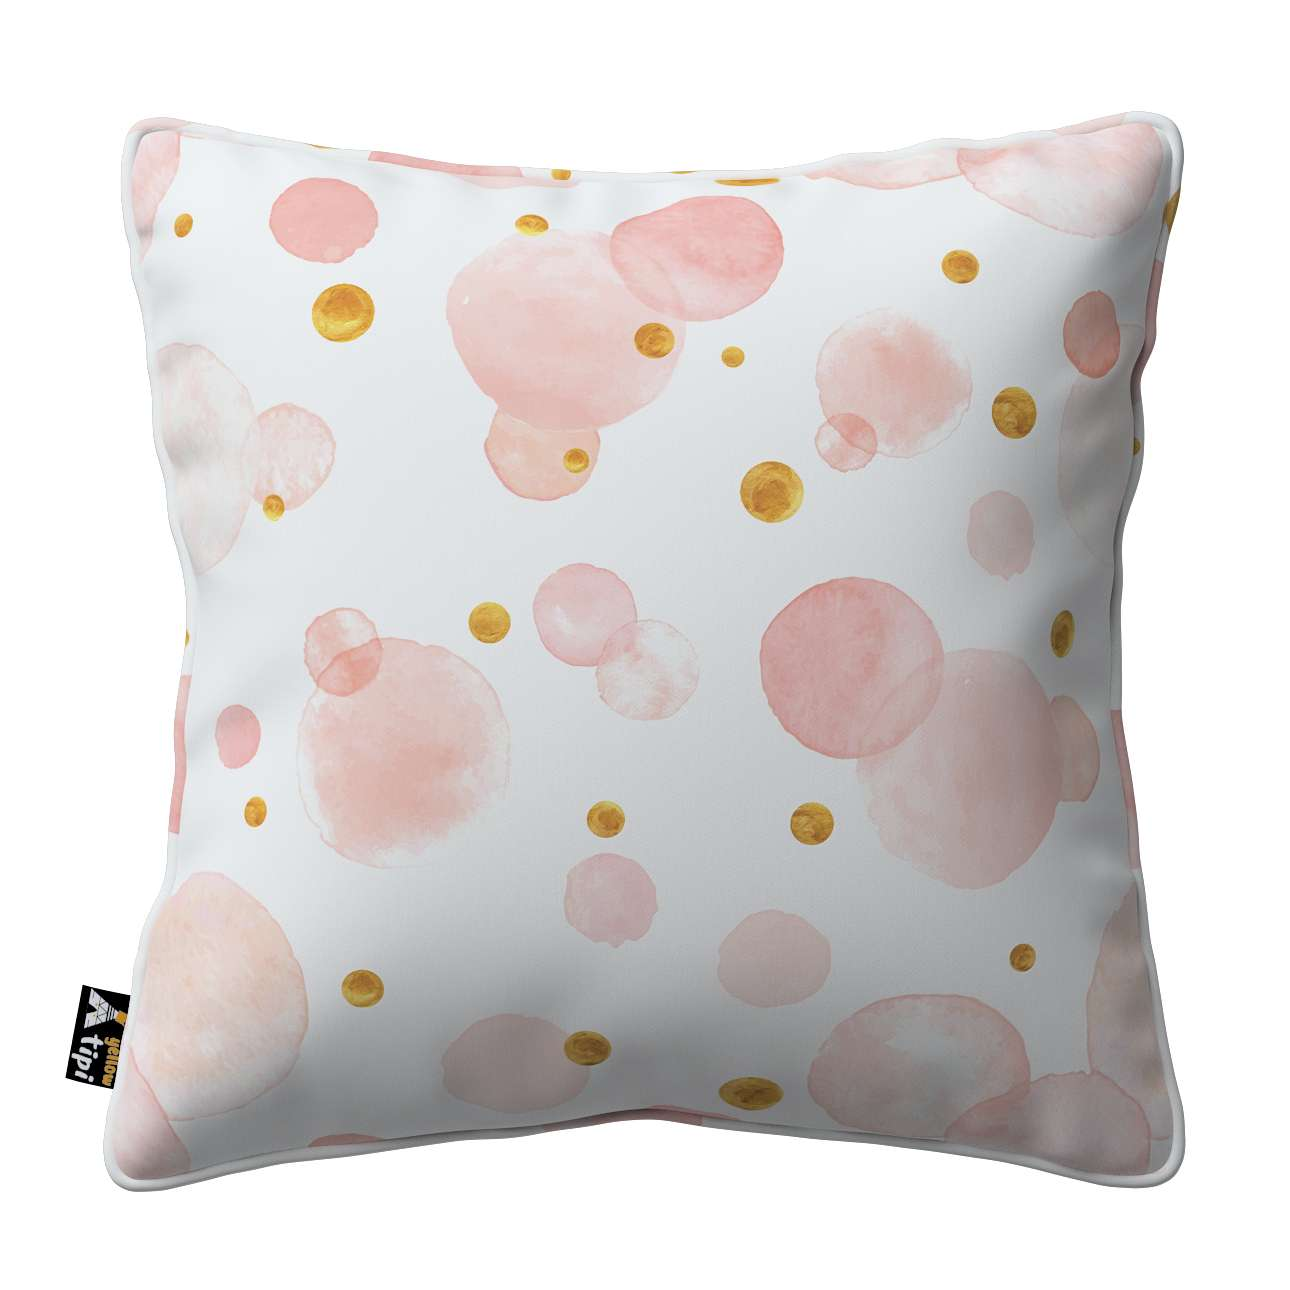 Lola piped cushion cover in collection Magic Collection, fabric: 500-13